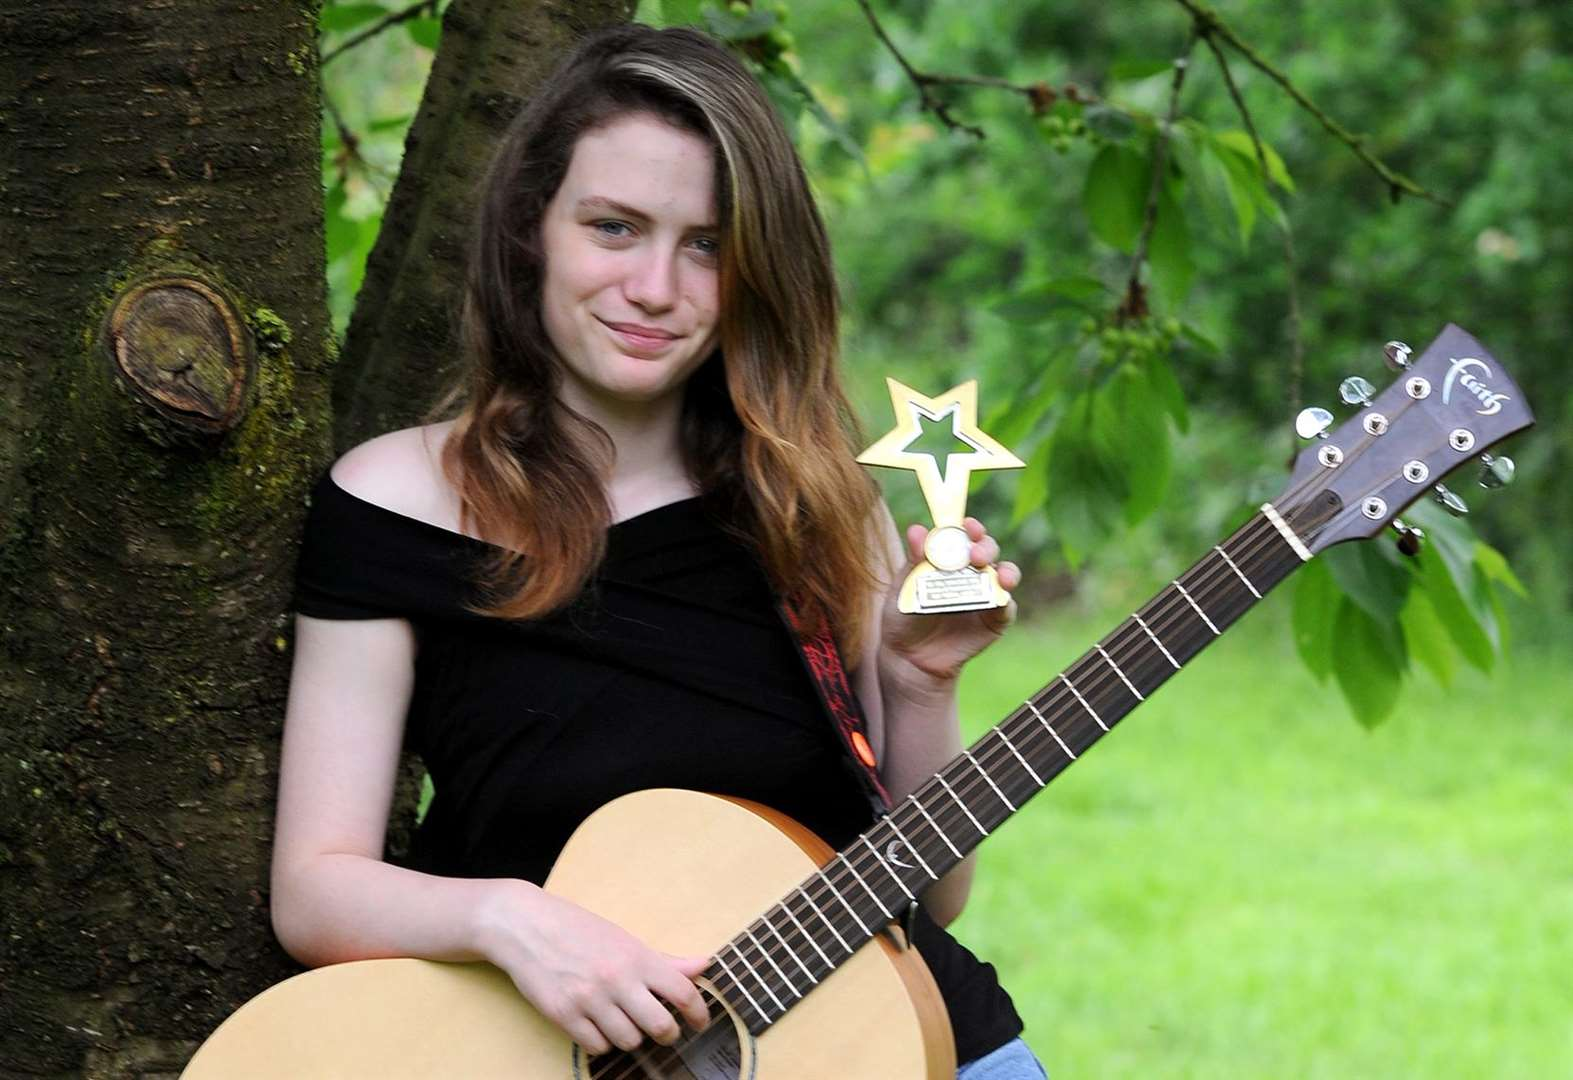 Singer Breeze thrilled to win young artist award